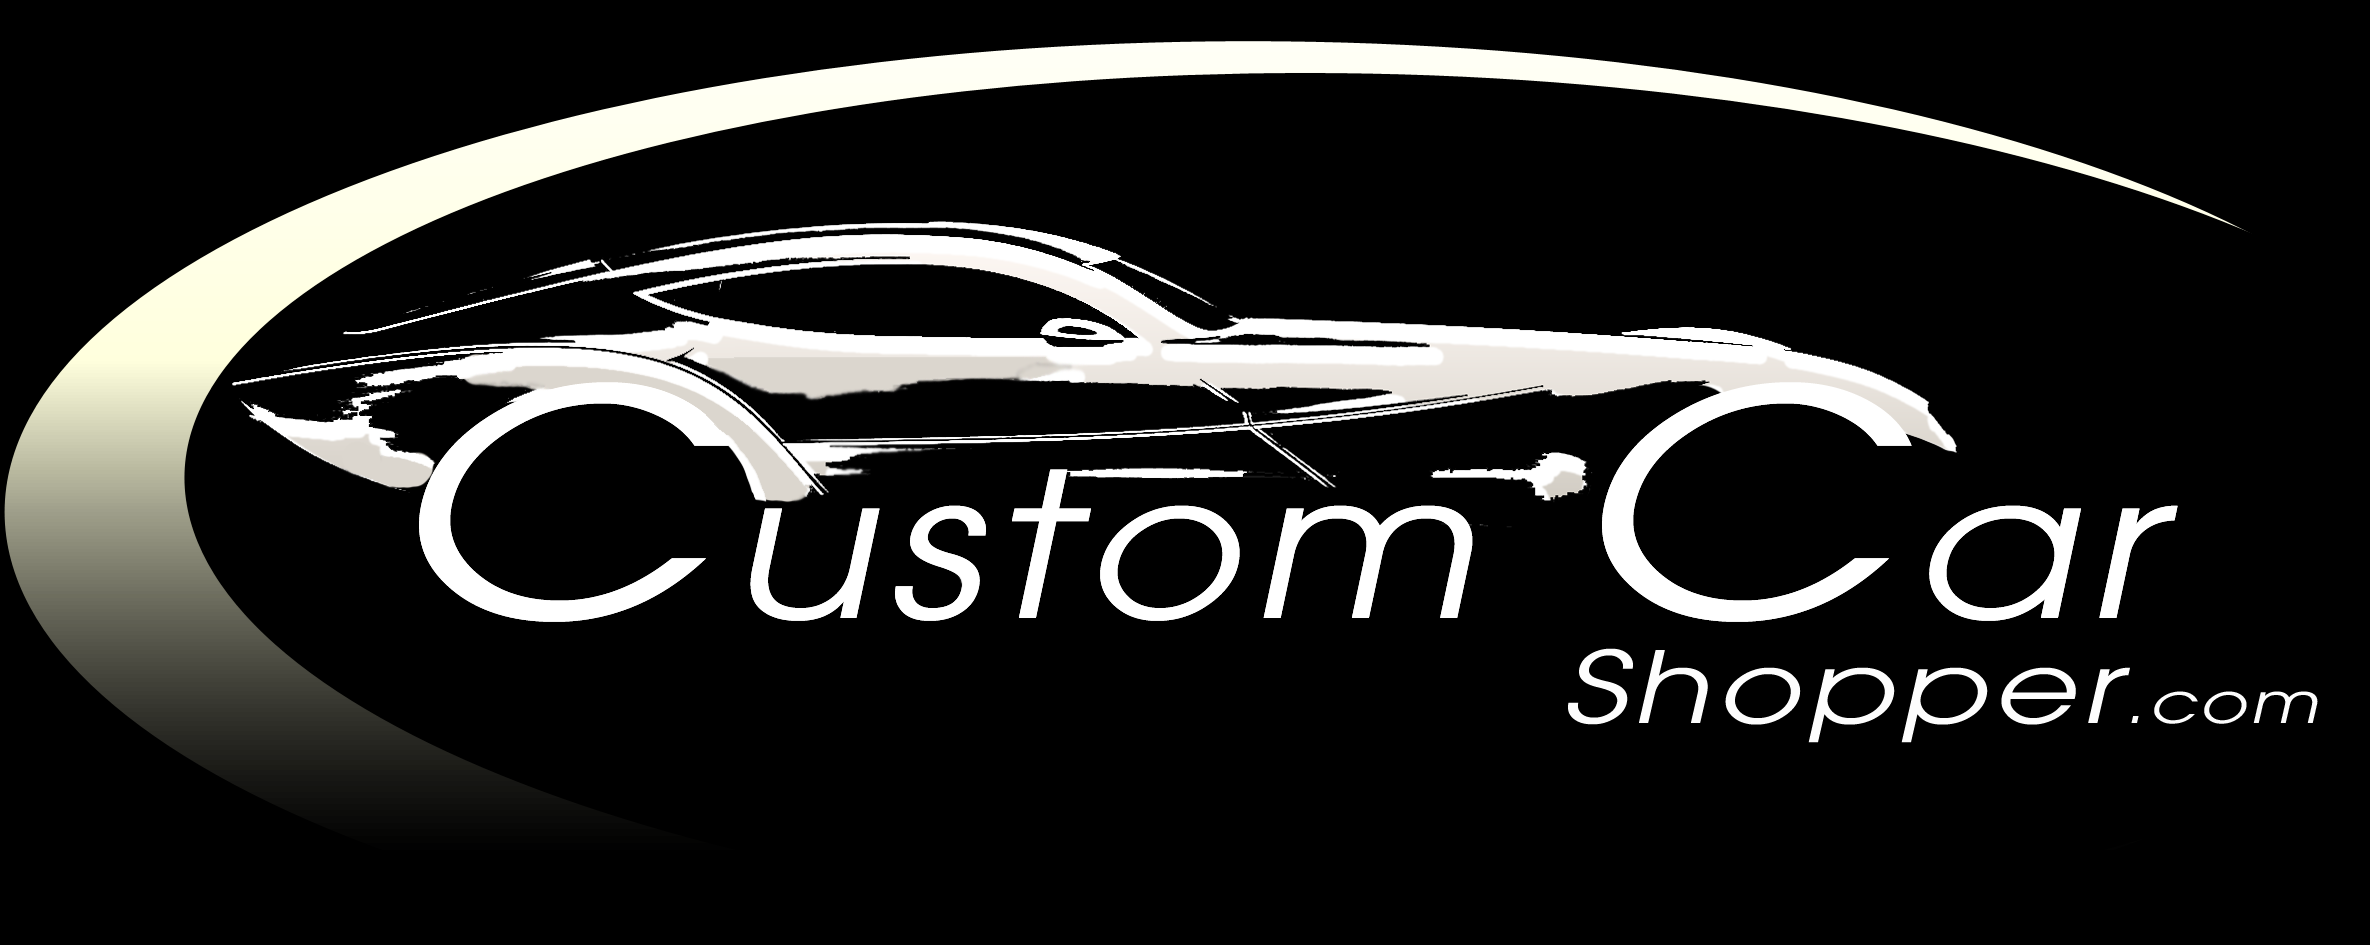 Custom Car Shopper